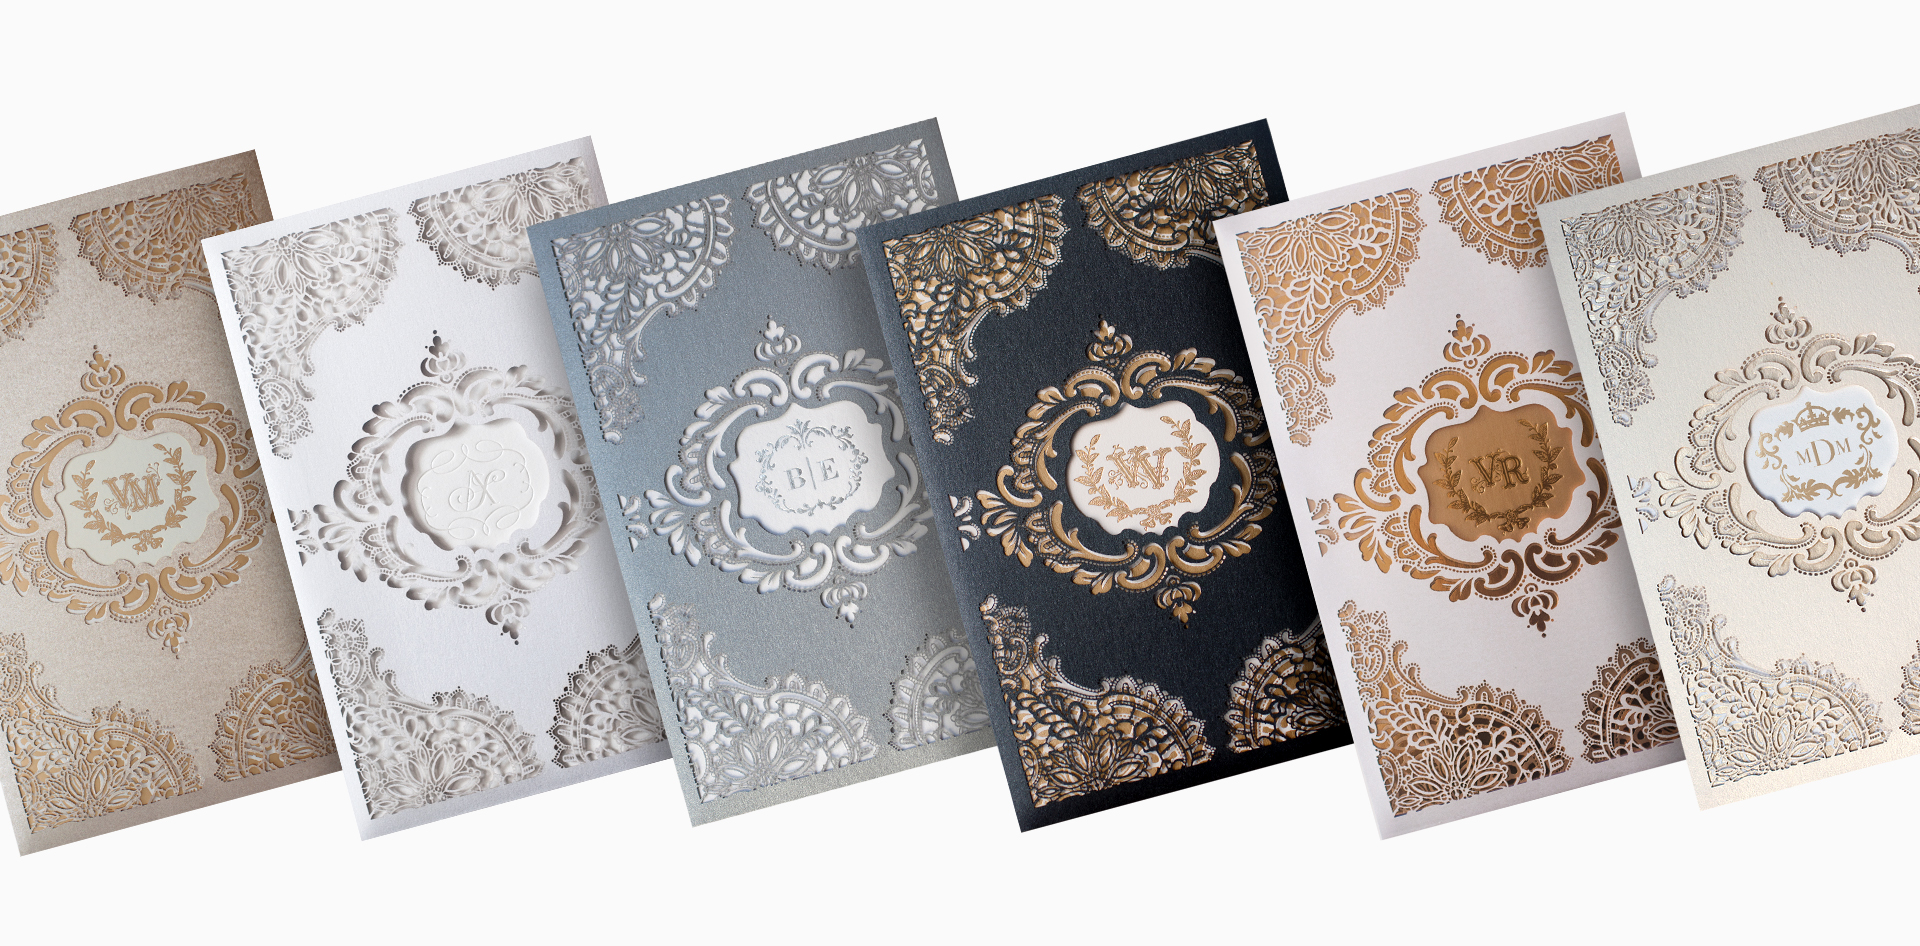 Laser cut lace wedding invitations in multiple colors